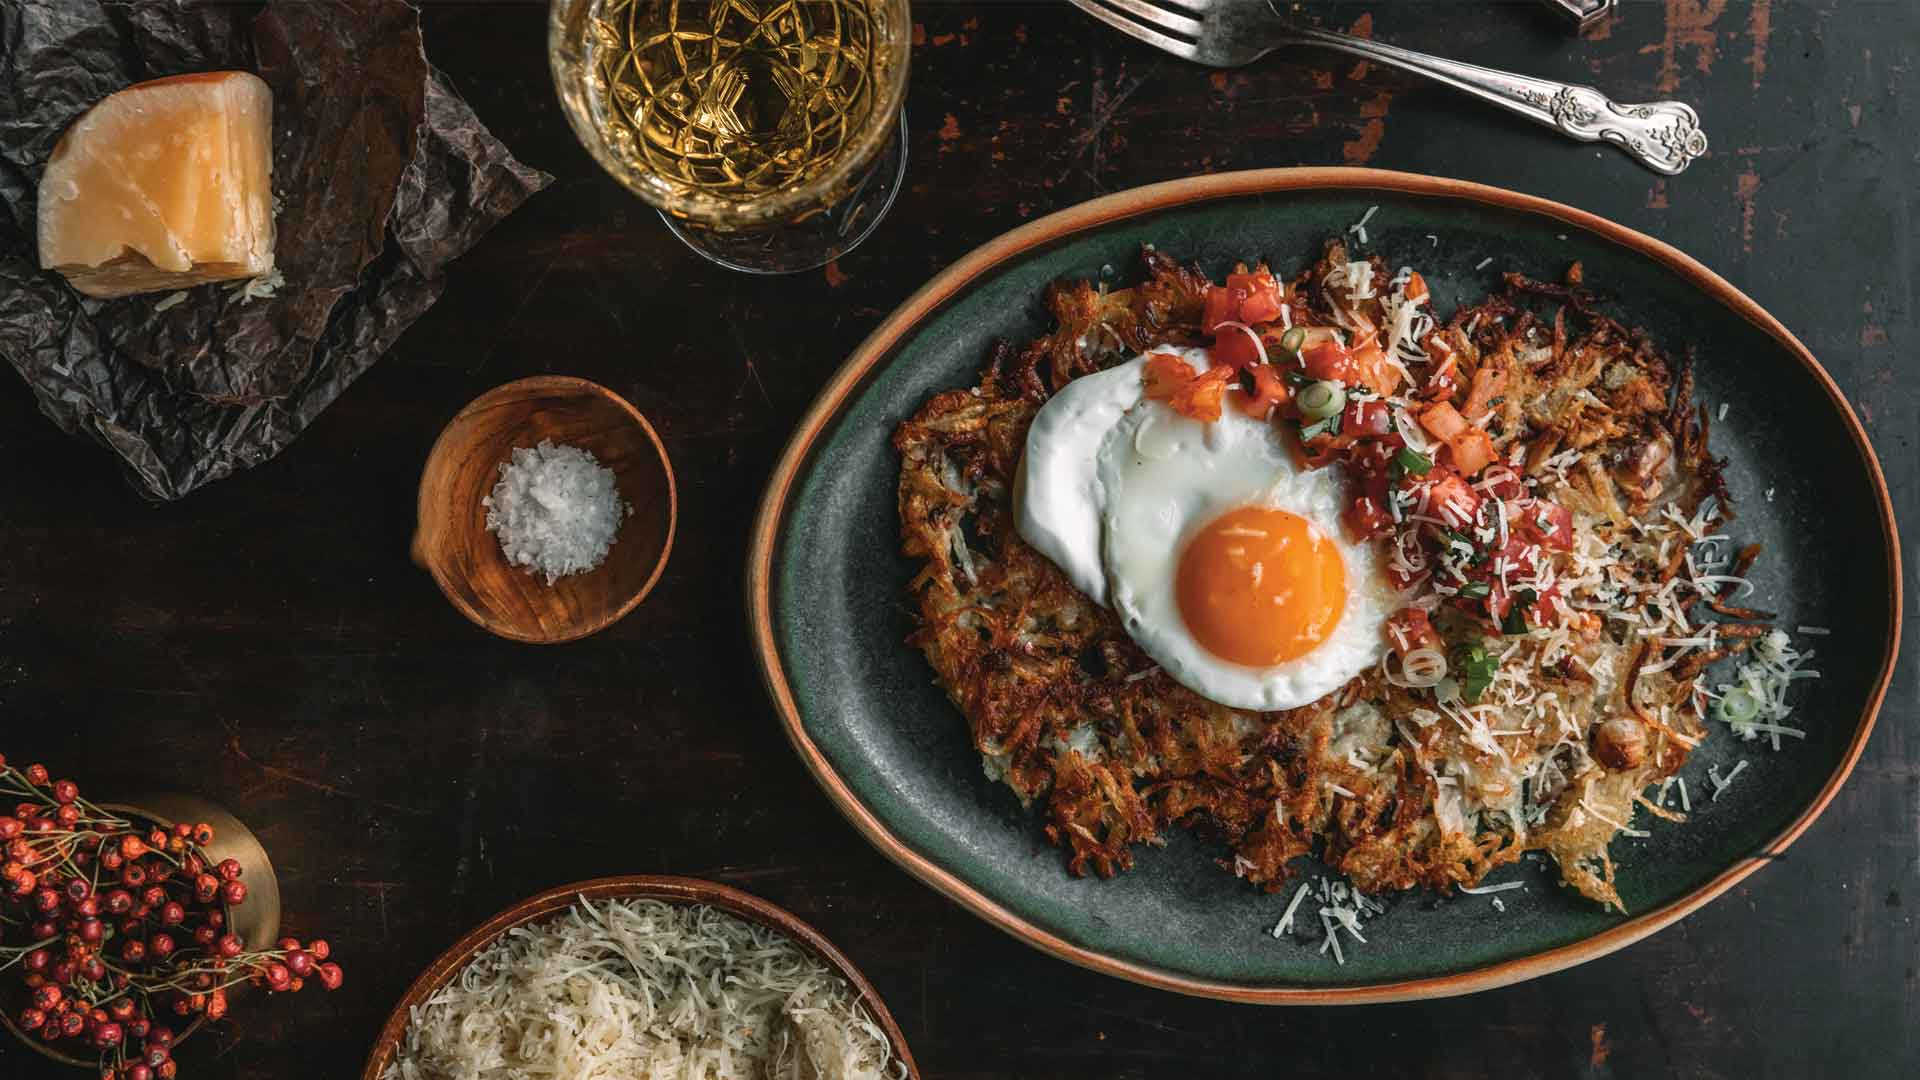 overhead shot of Black dish containing Rosti with fried egg on top